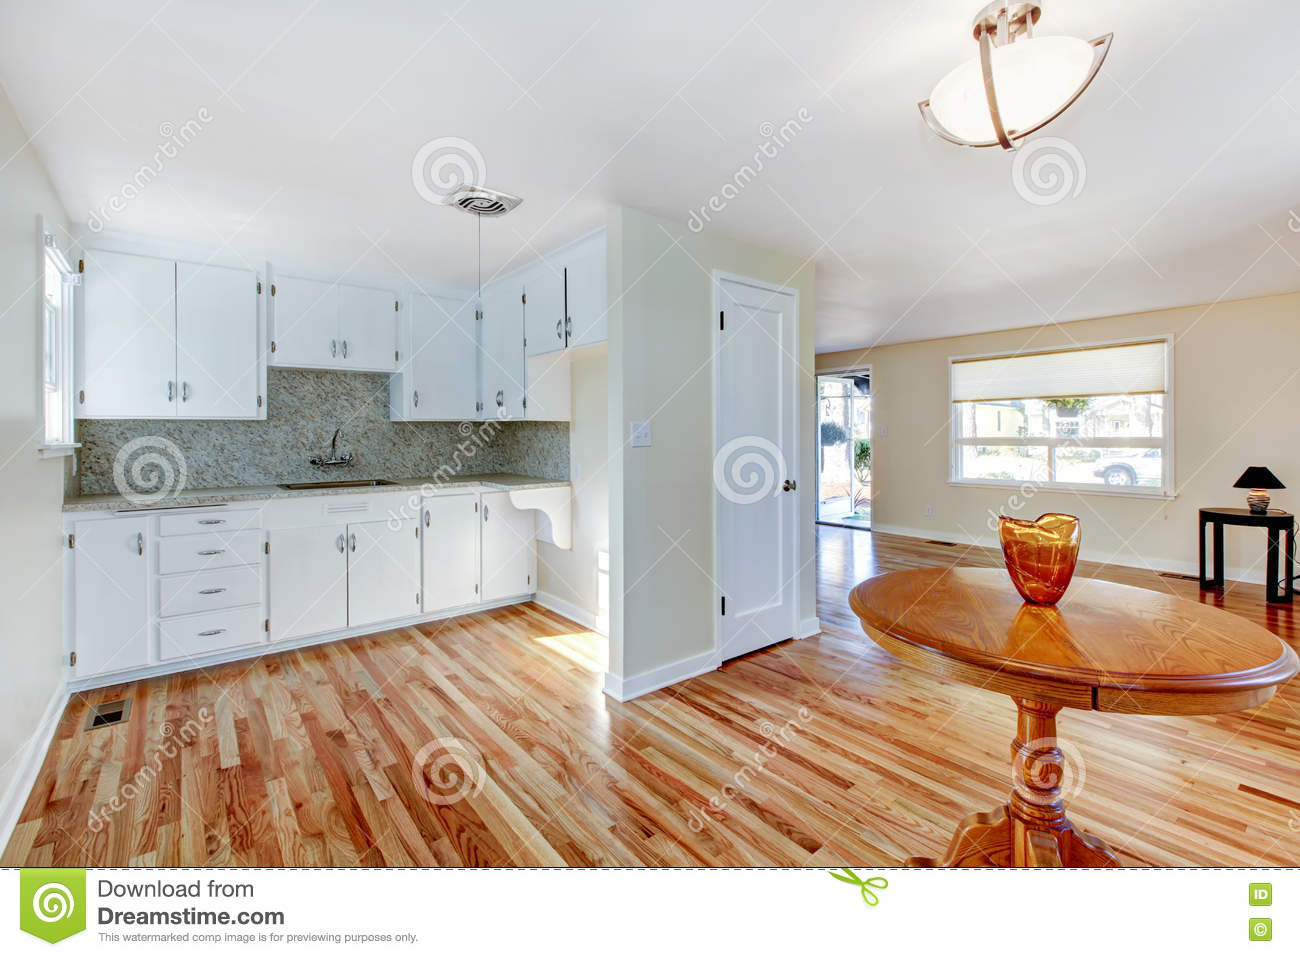 White Kitchen Cabinets With Light Tone Hardwood Floor